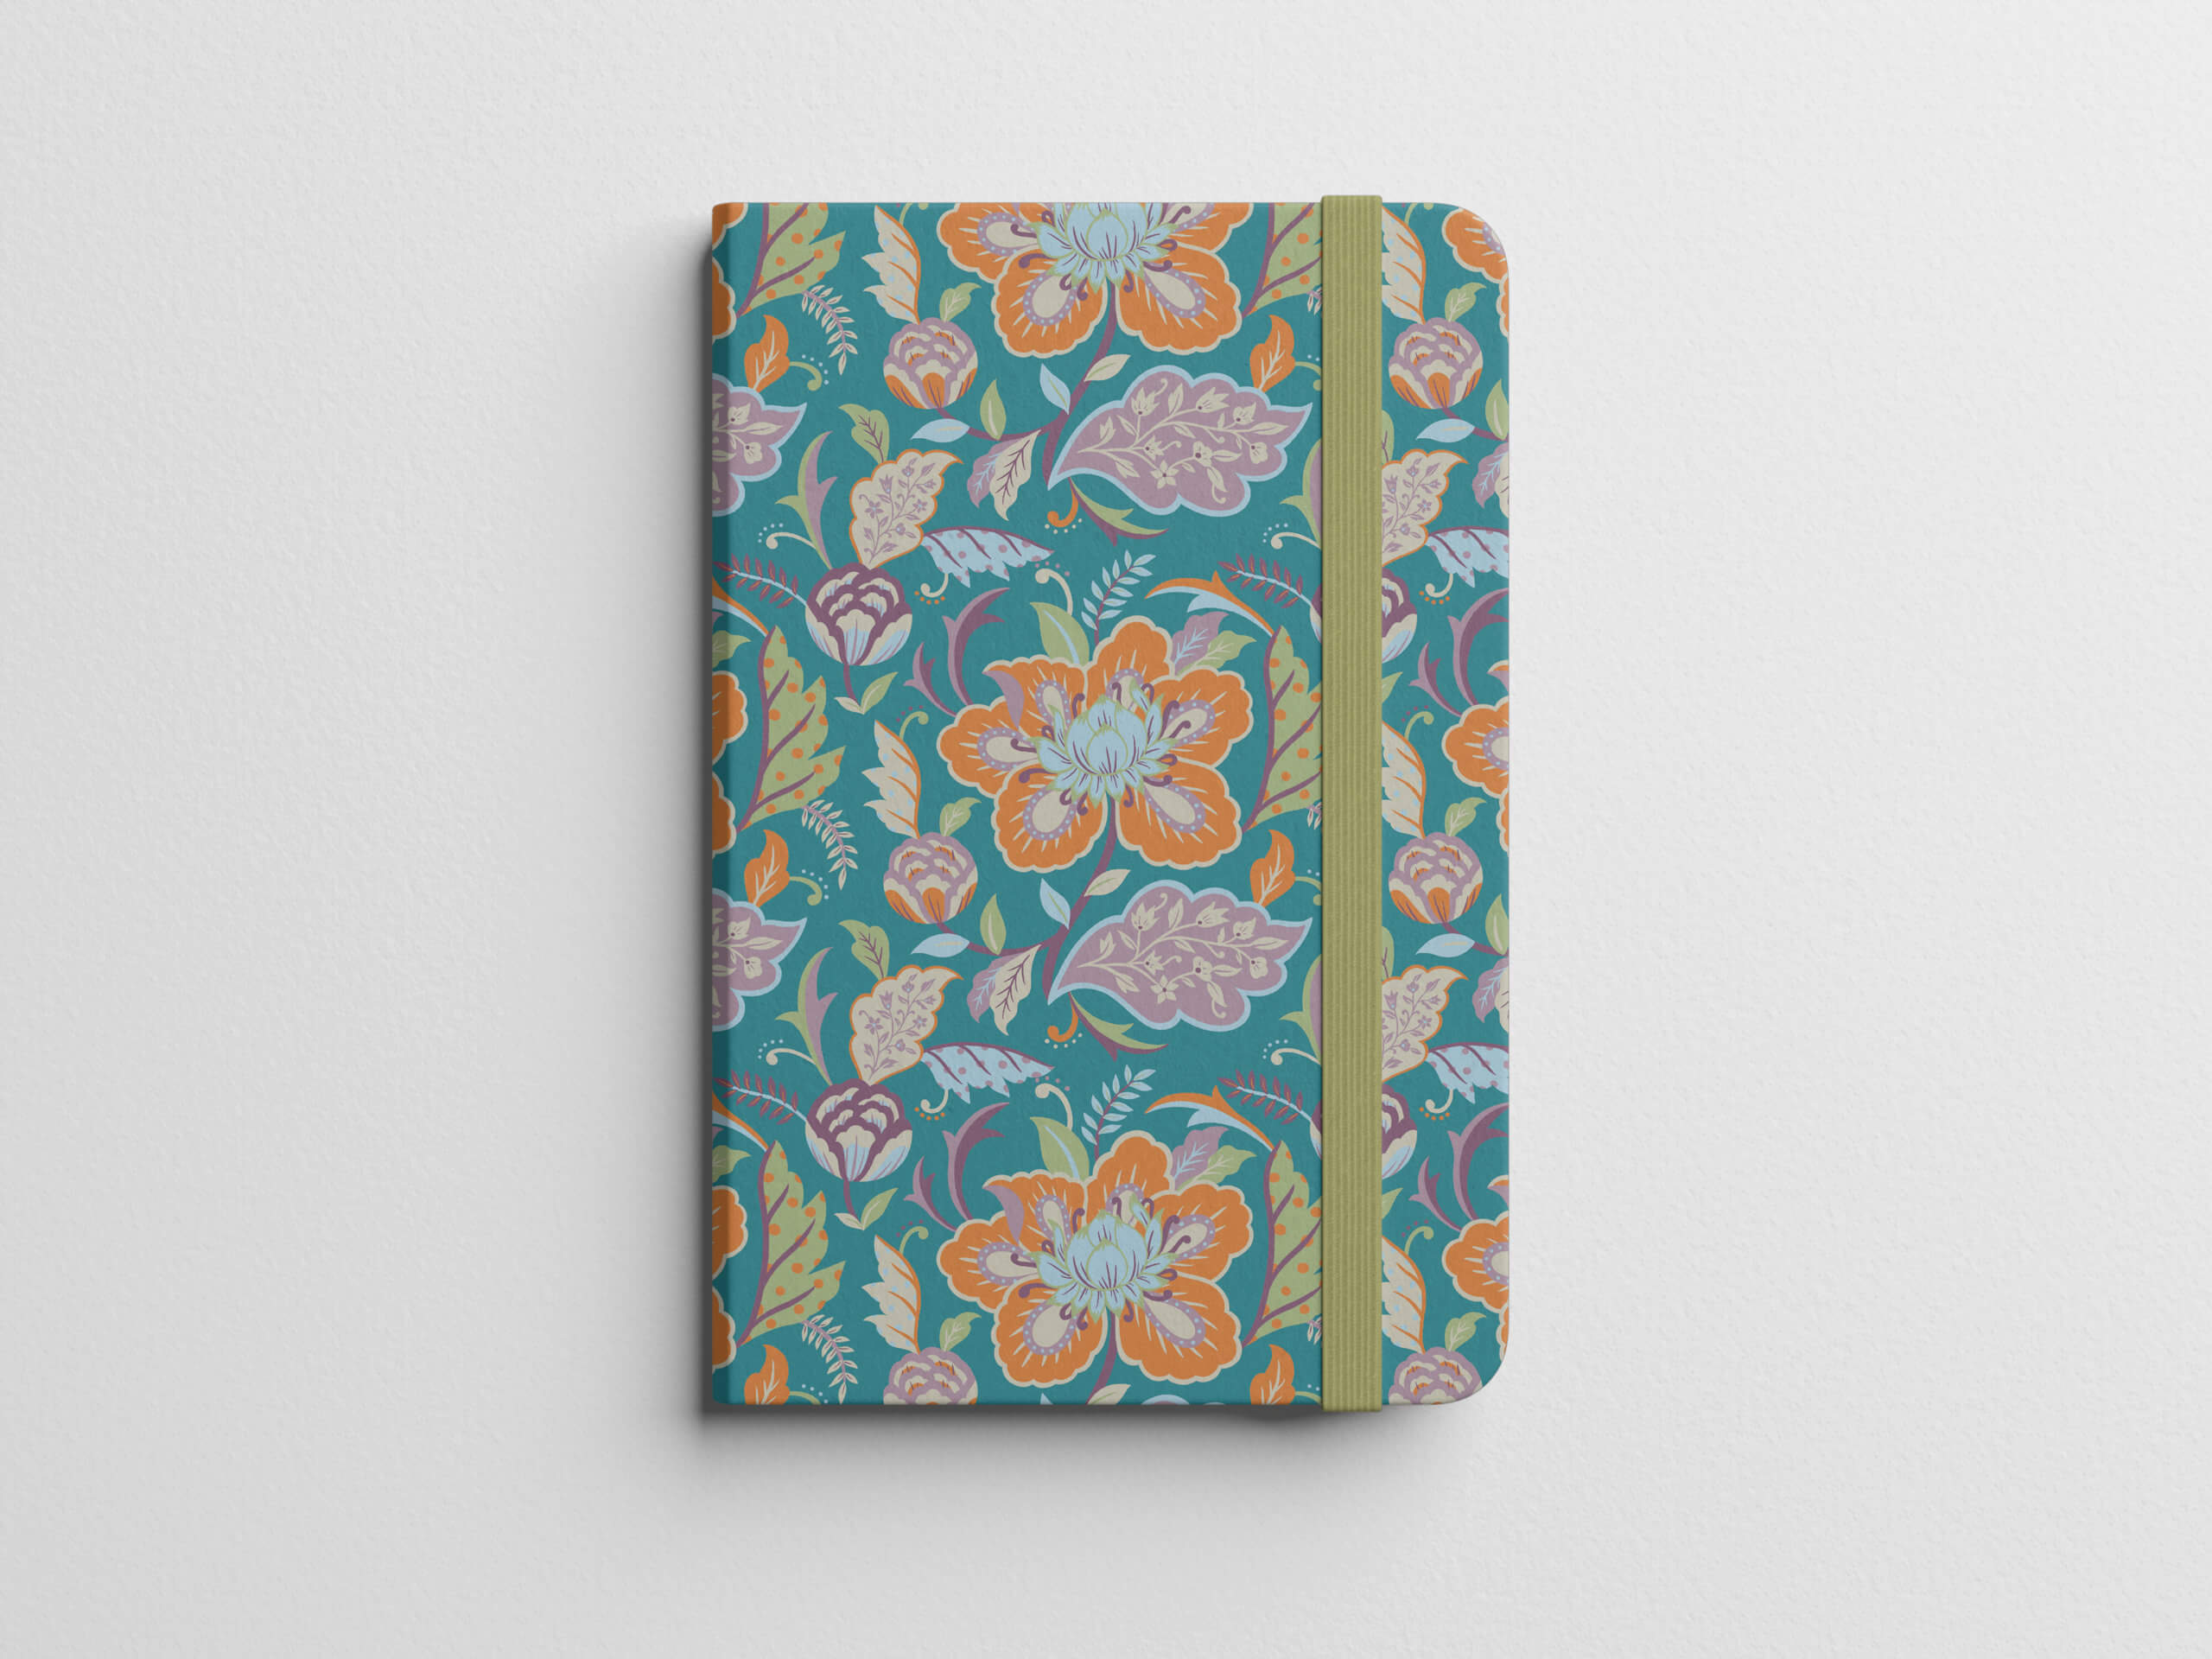 Notebook Mockup #2 by Anthony Boyd Graphics